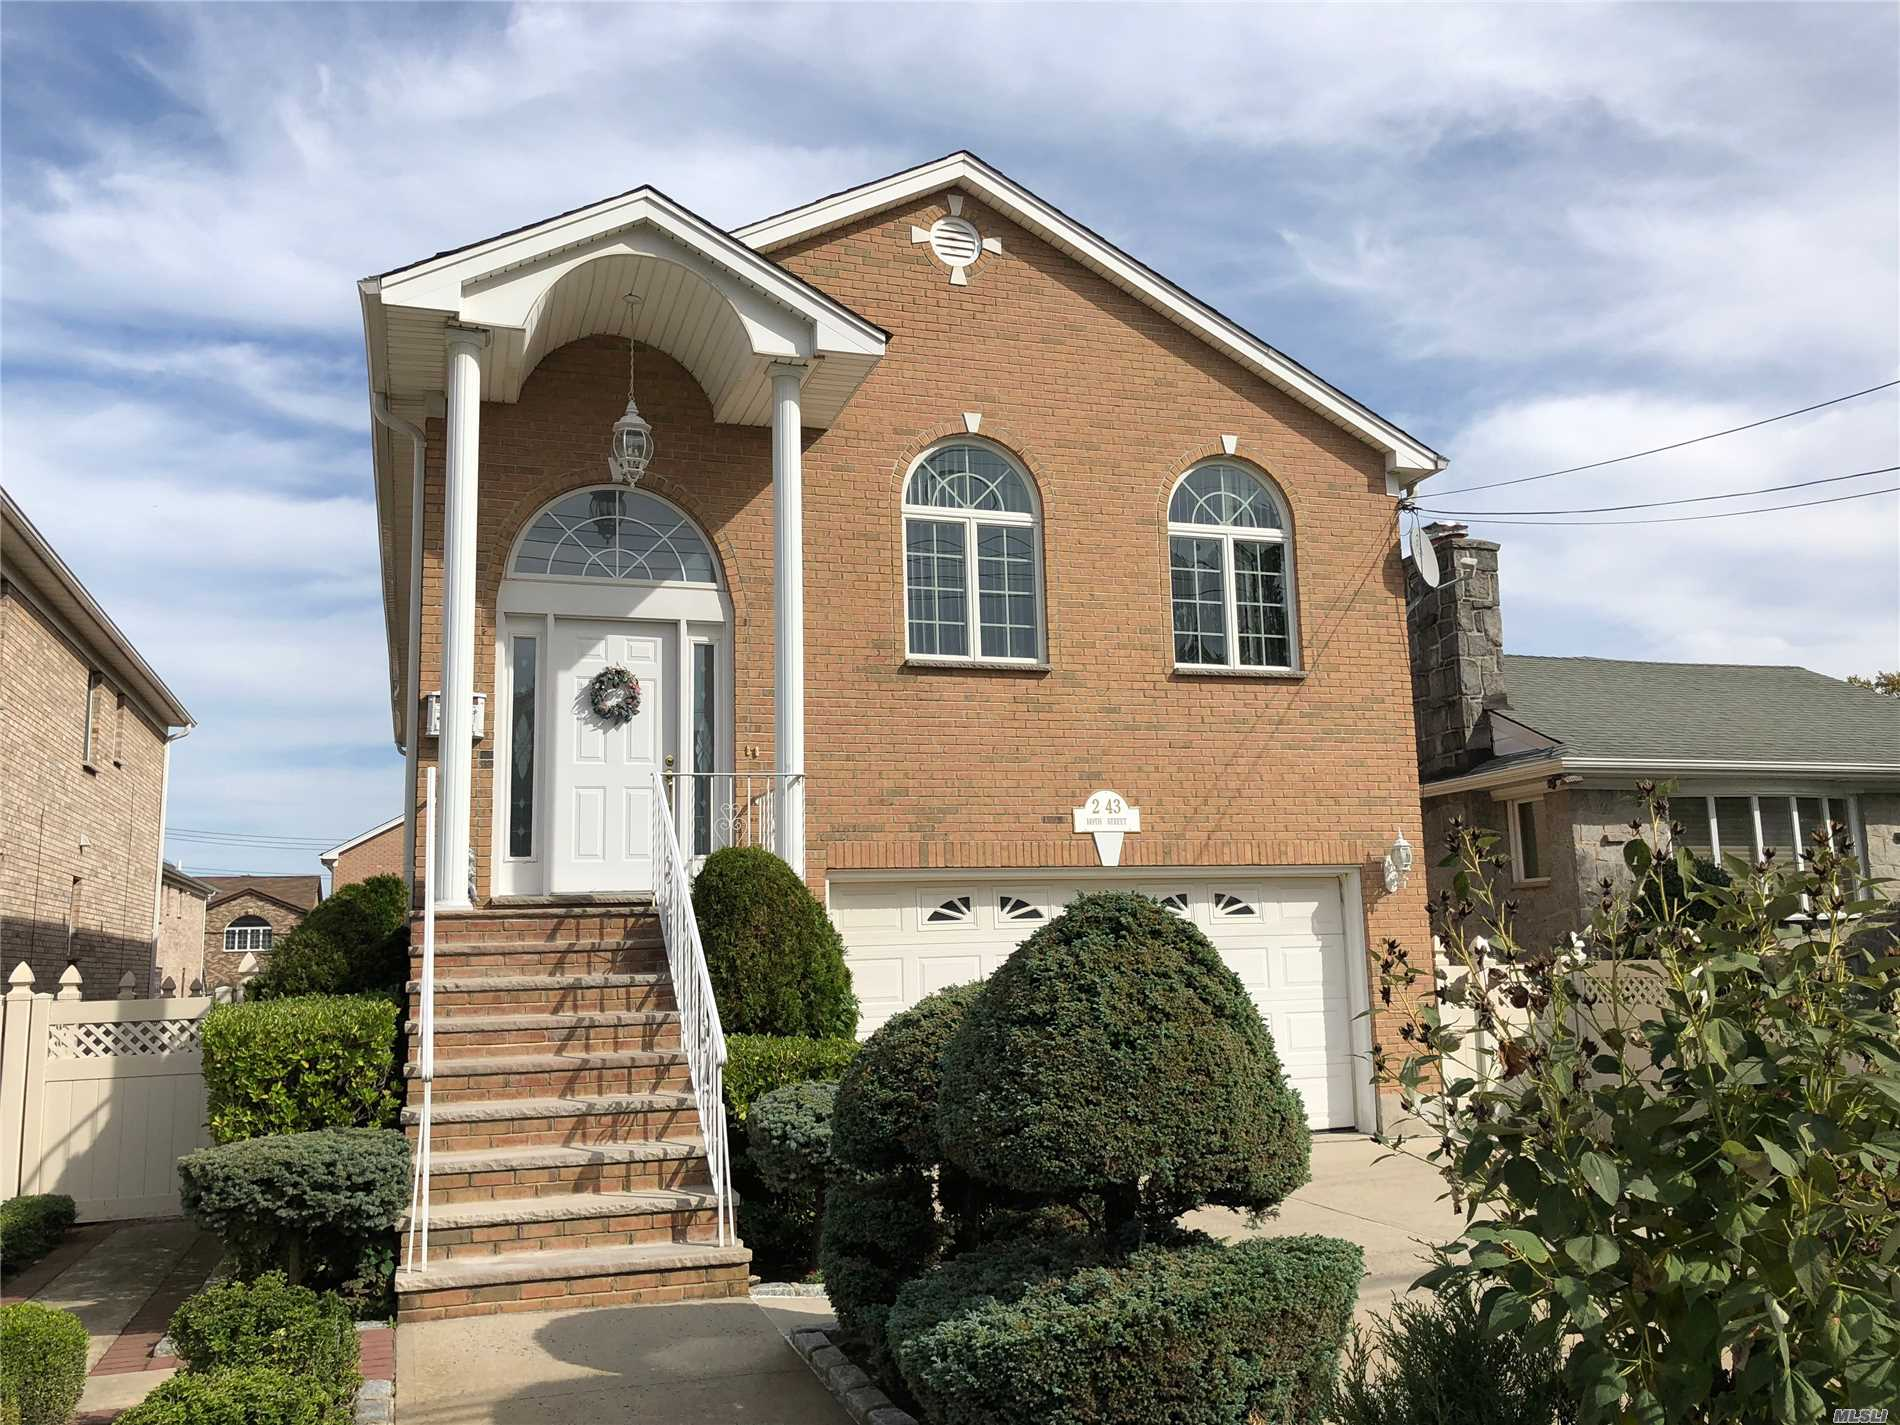 Beautiful Brick 3 Floor High Ranch For Sale In Whitestone! 4 Bedrooms, 3 Full Baths, Living Room, Formal Dining Room & Spacious Eat-In-Kitchen With Ss Appliances, Custom Cabinets & Granite Countertops. Family Room, Great Room With Gas Fireplace & Boiler Room. Hardwood Flooring Throughout & Cac. Full Basement With Separate Entrance, 2 Car Garage And 2 Car Driveway. Located Near Park With Gorgeous Views. 40X107 Lot. A Must See!